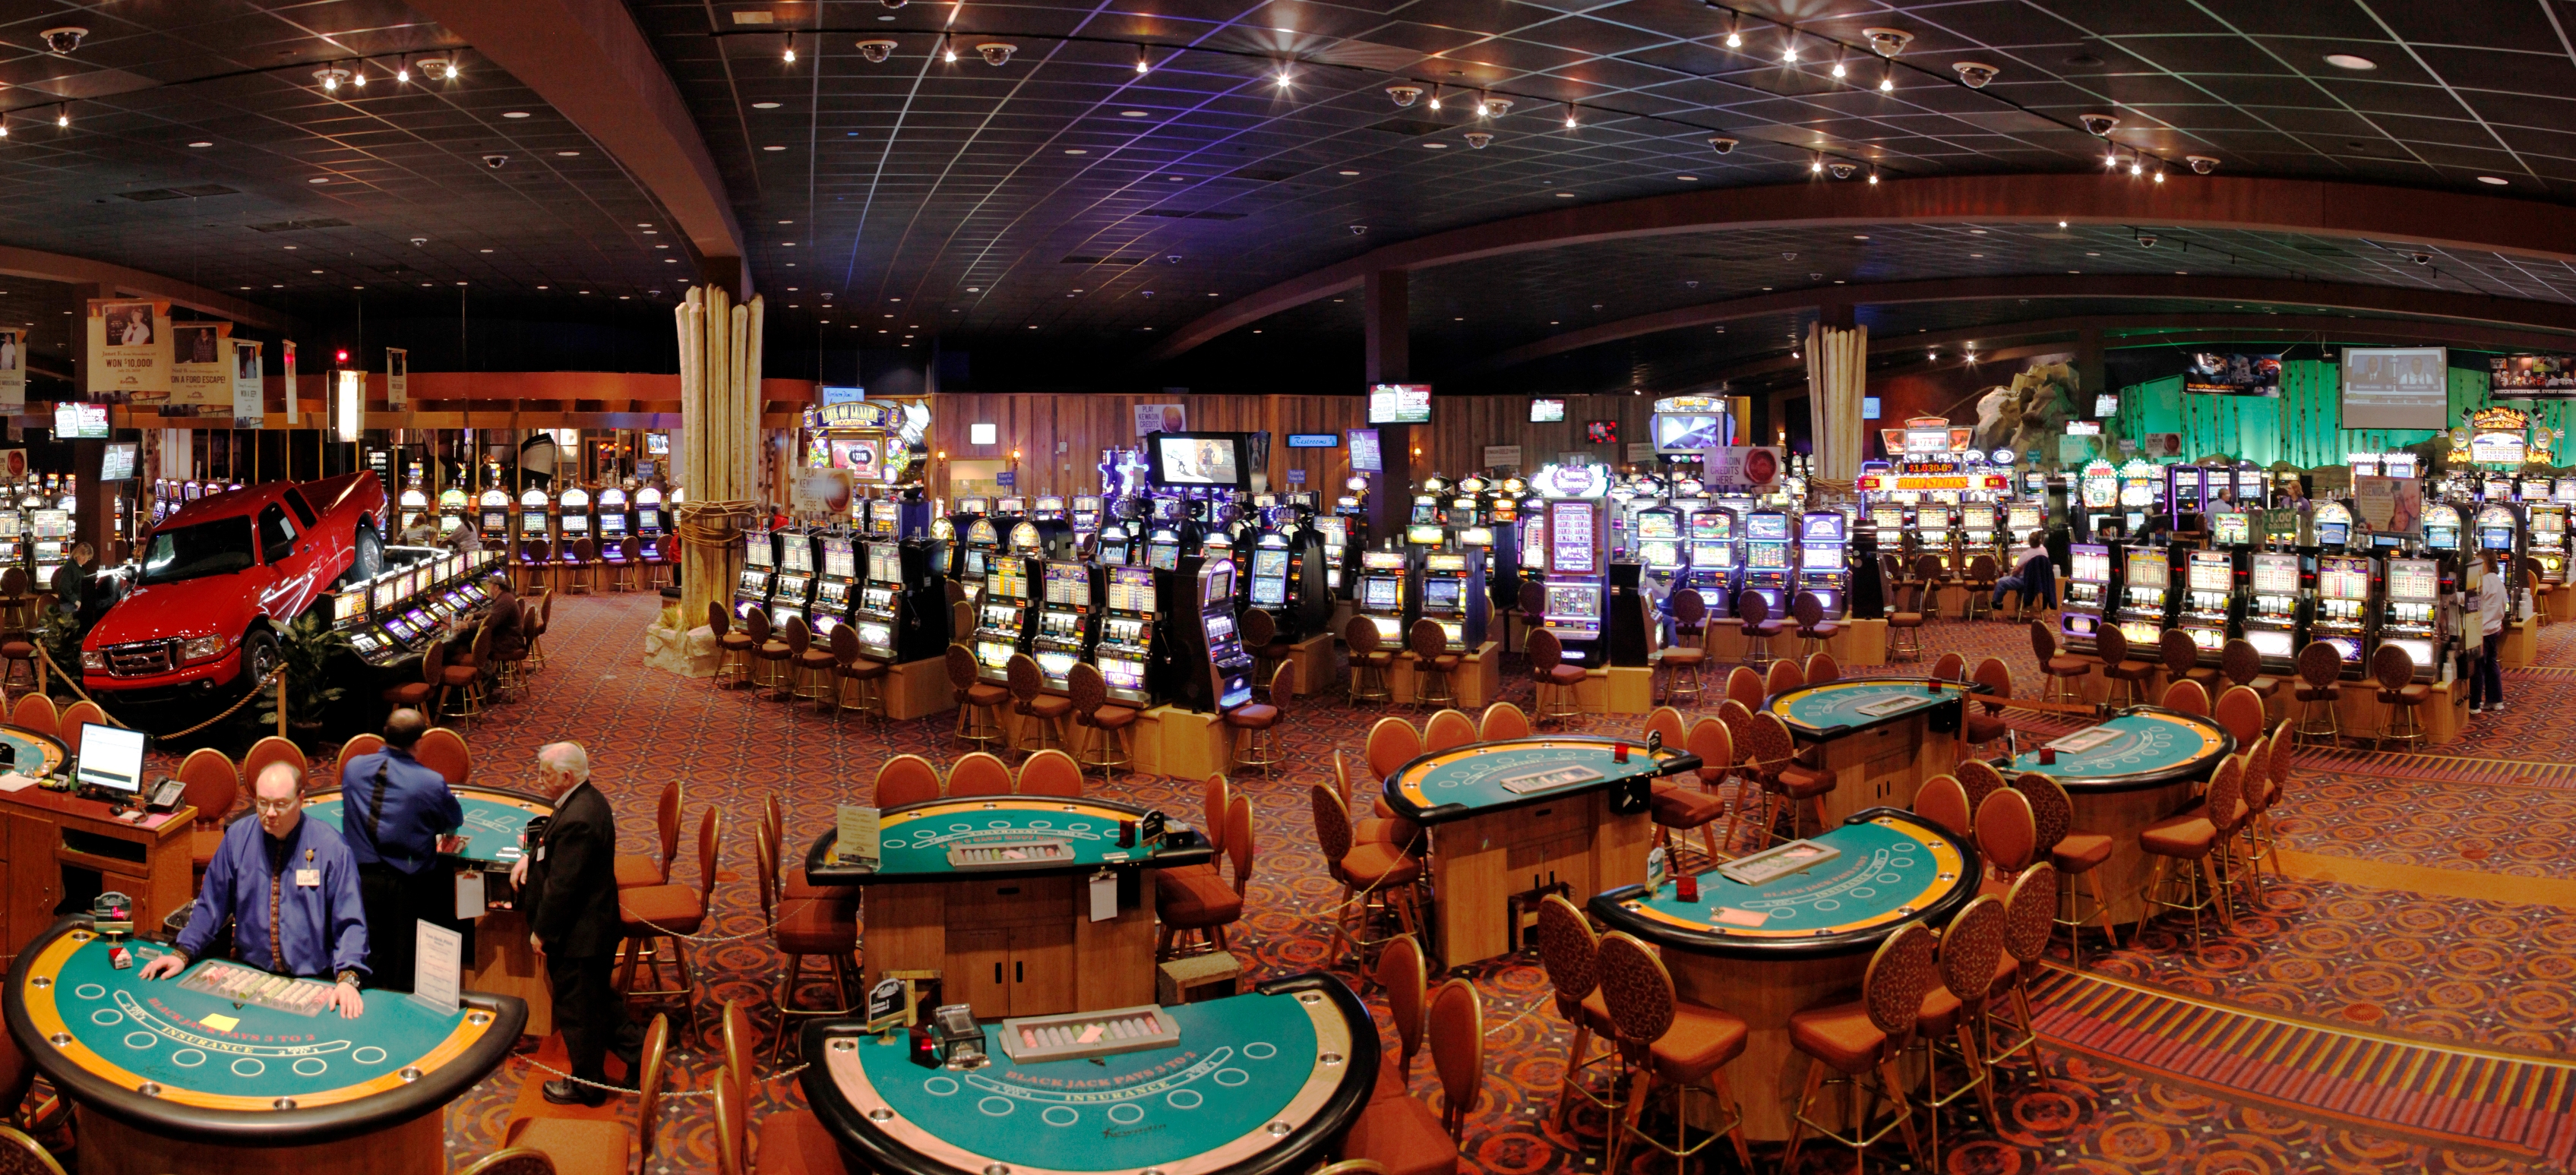 Big Casino Equipped Hall 4245149 3391x1547 All For Desktop